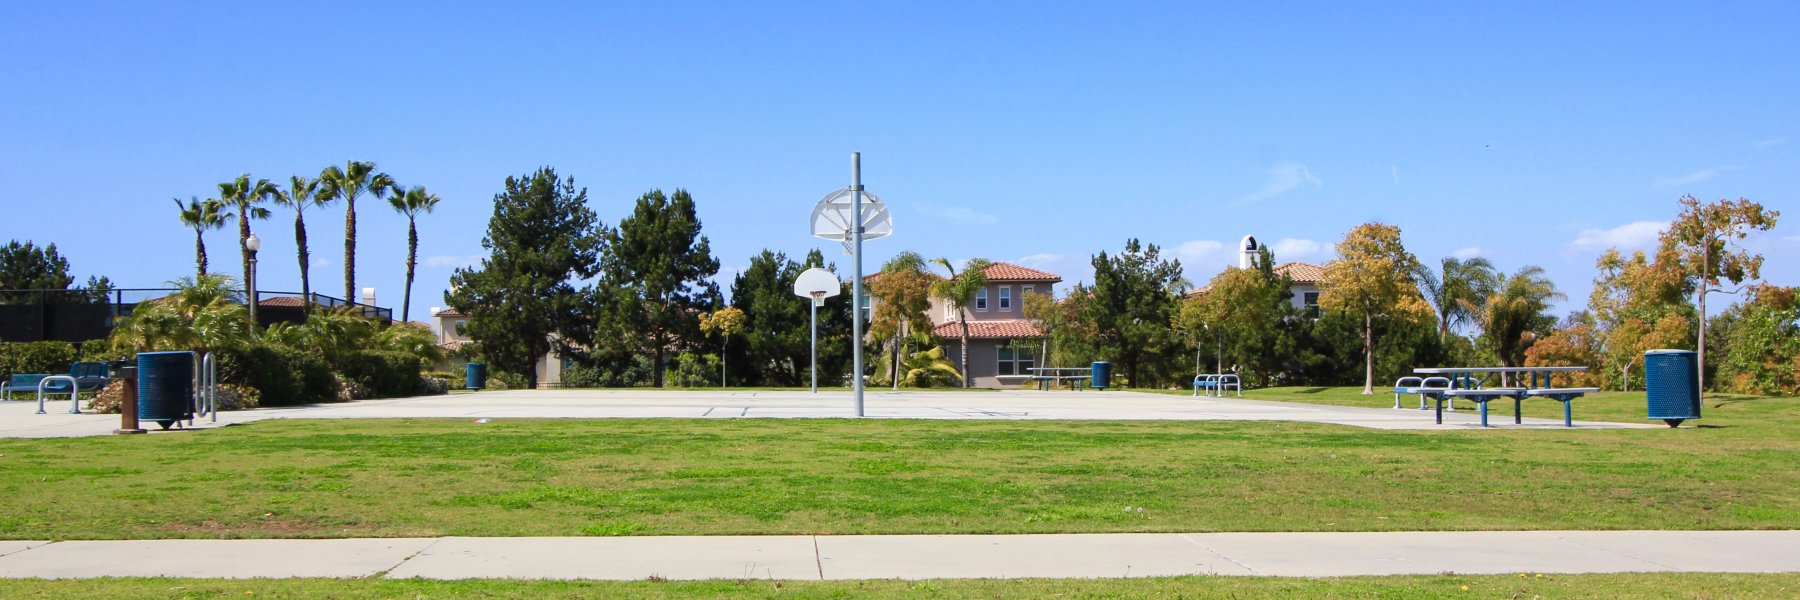 Edwards Hill is a community of homes in Huntington Beach California